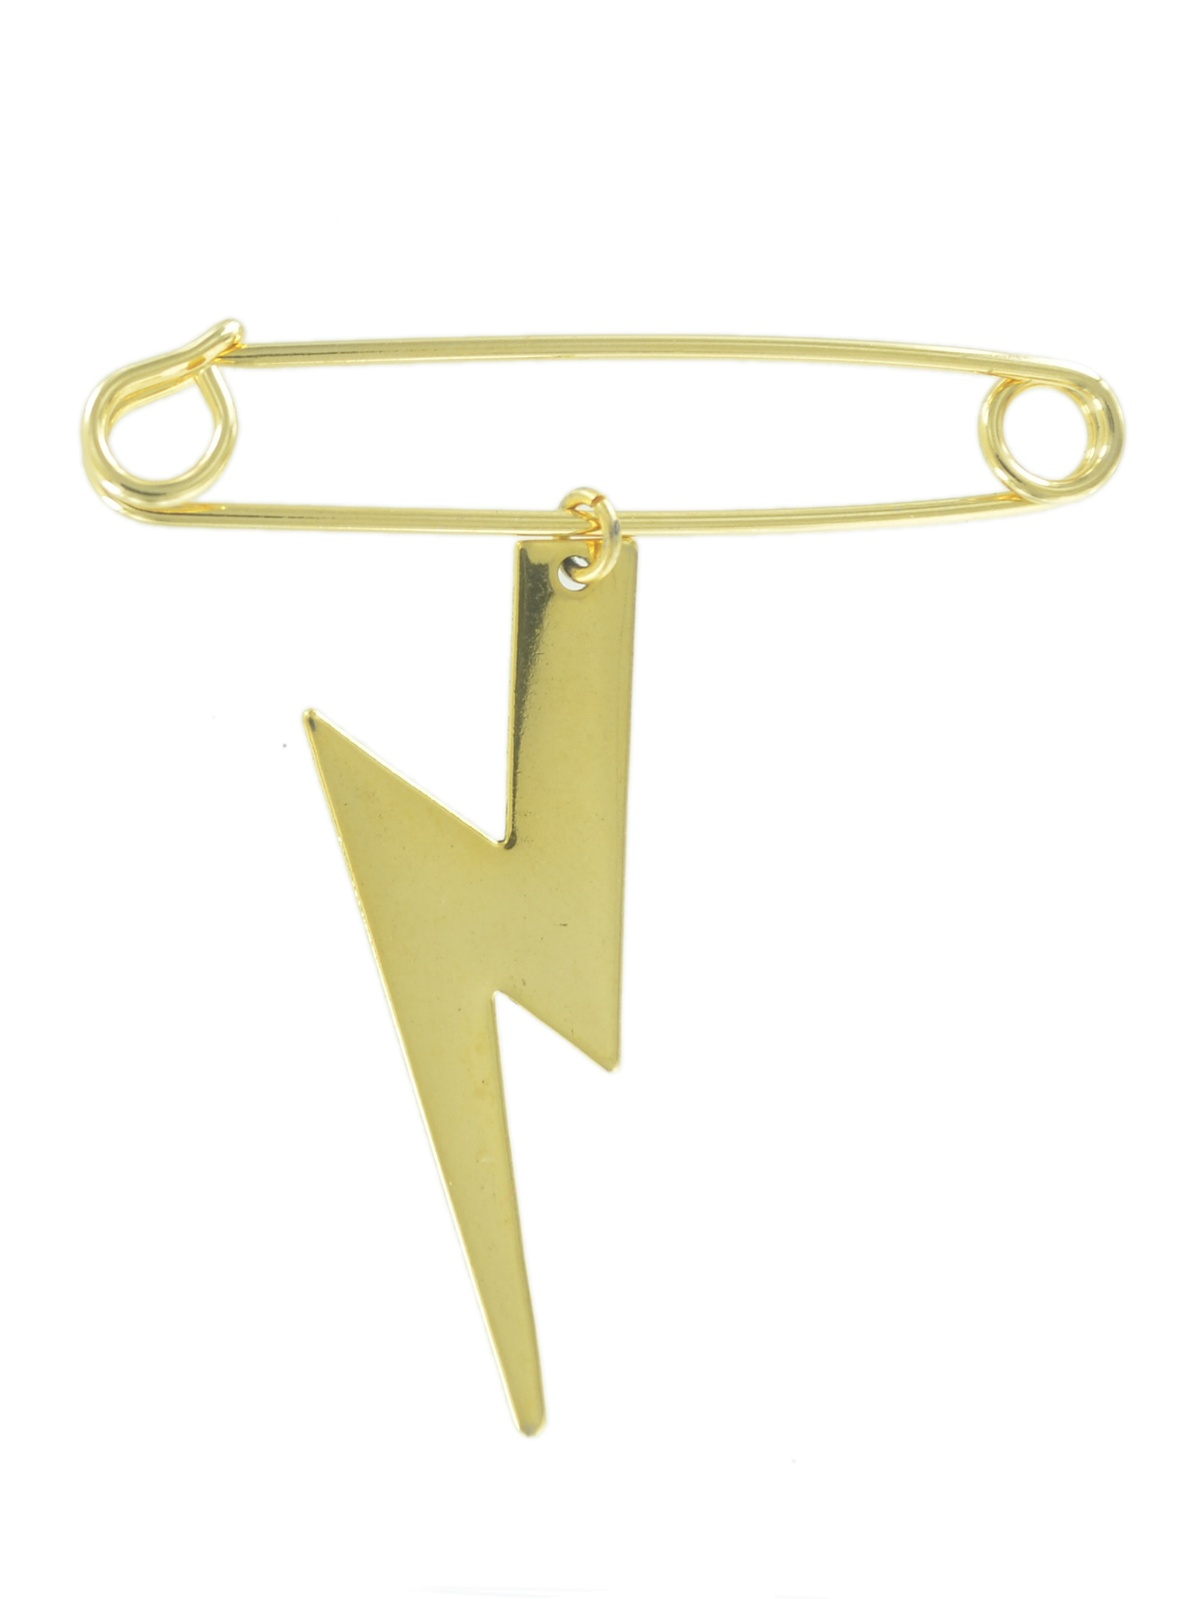 "Safety Pin Brooch 2"" Gold Tone Lightning Bolt Weather Charm Dangle Middle by Ky & Co"